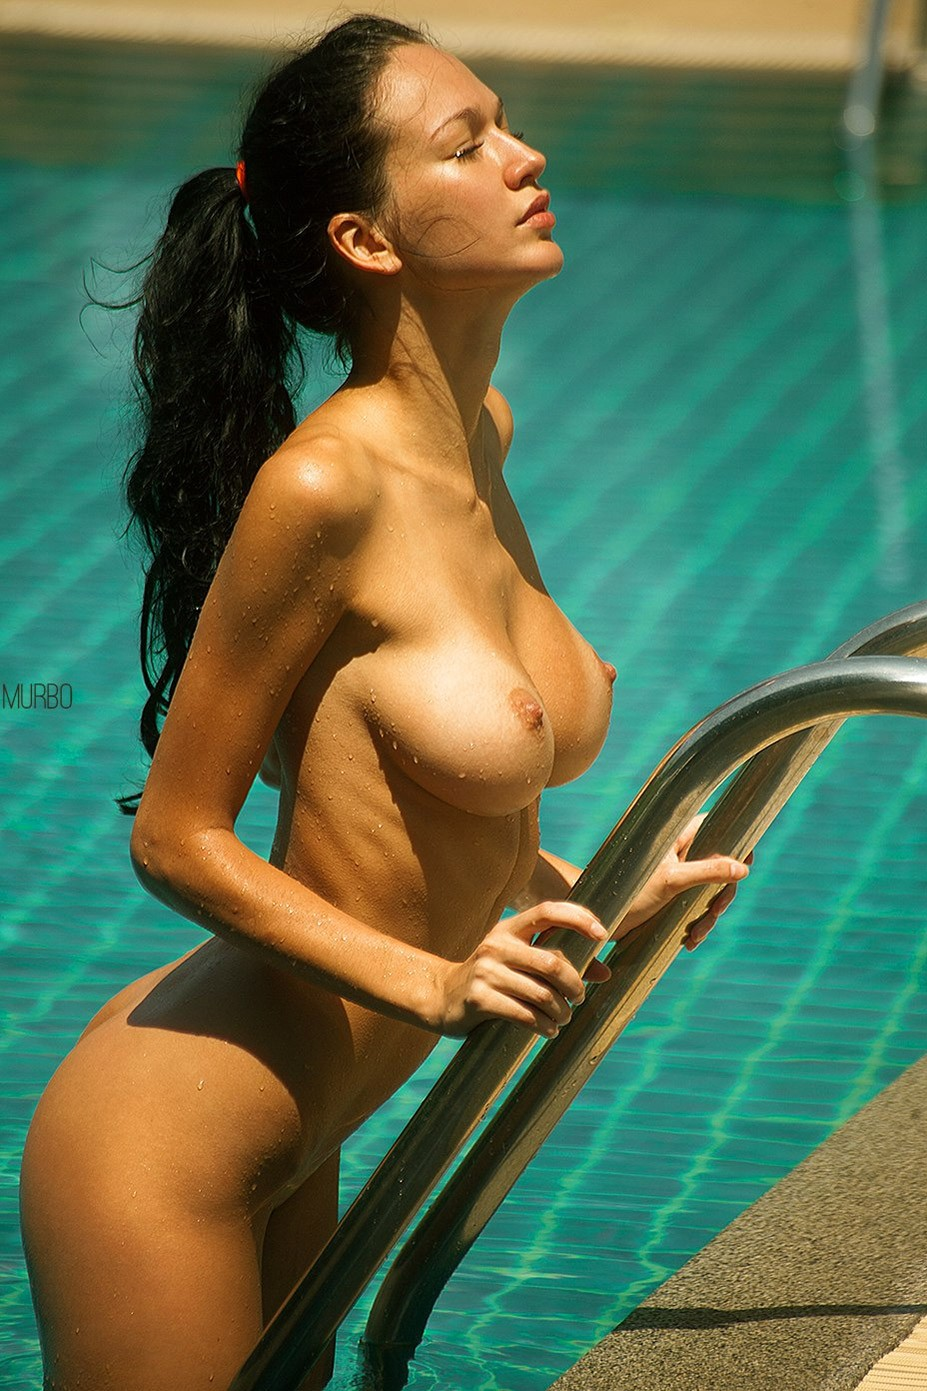 Анастасия Марципанова / Anastasia Martzipanova nude in Thai by Murbo